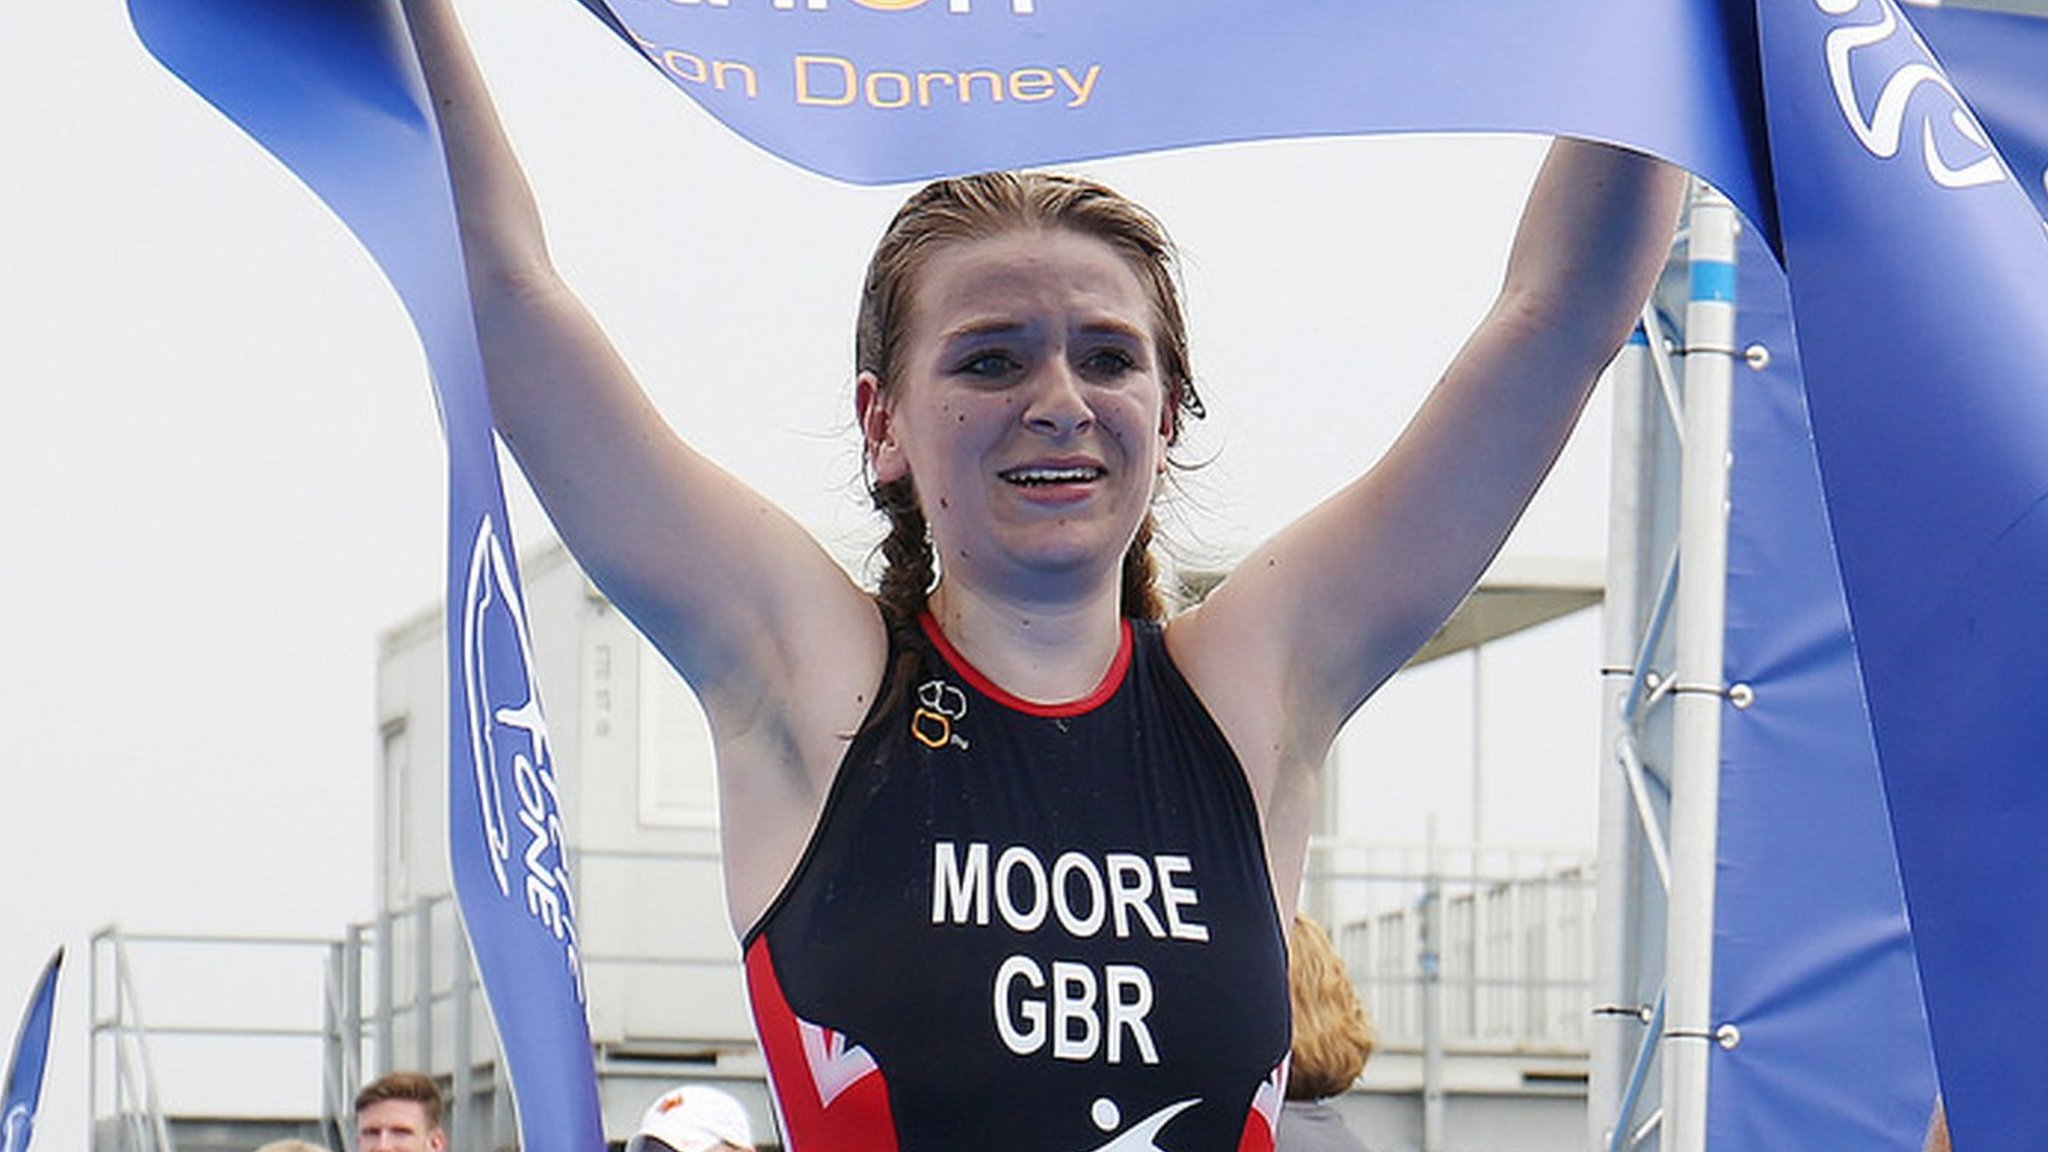 GB's Moore wins Para-triathlon European gold - two years after paying for own leg amputation